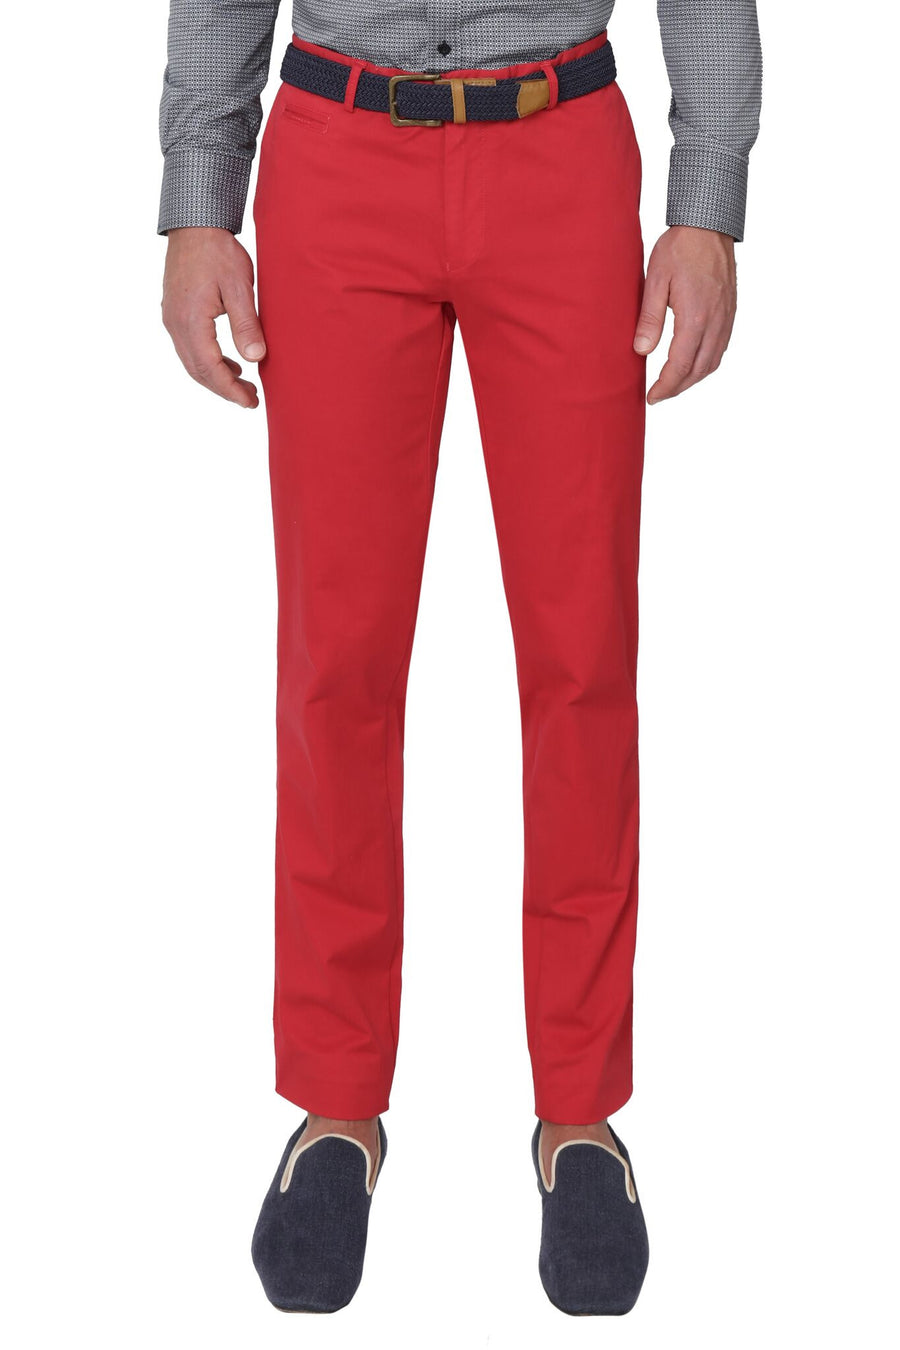 Bennett Stretch Washed European Cotton Chino in Fire Red